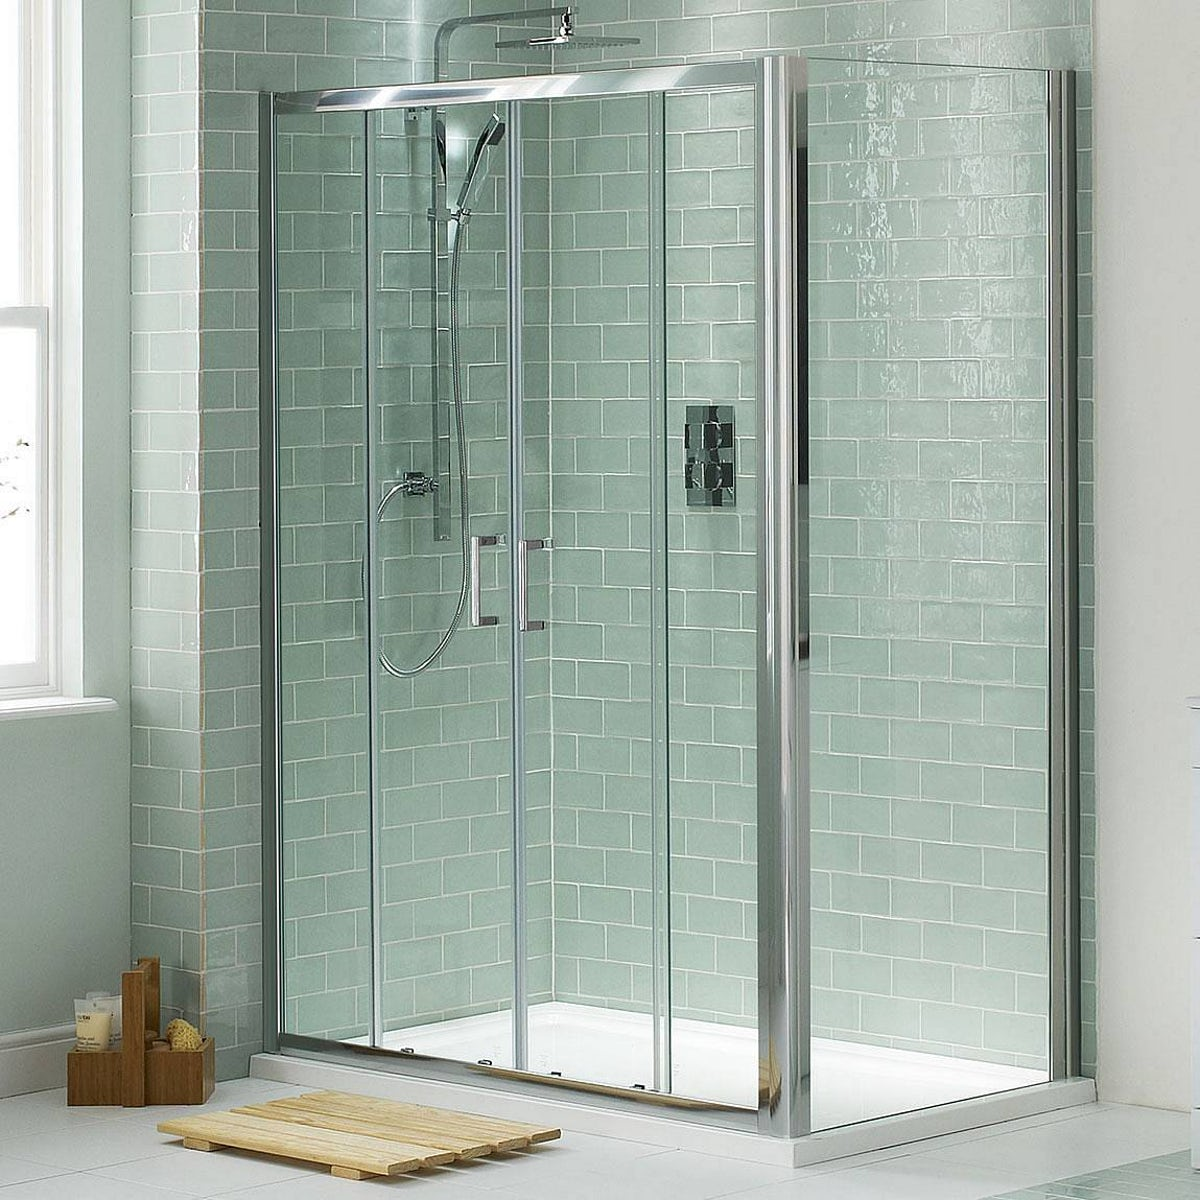 6mm Sliding Double Door Shower Enclosure